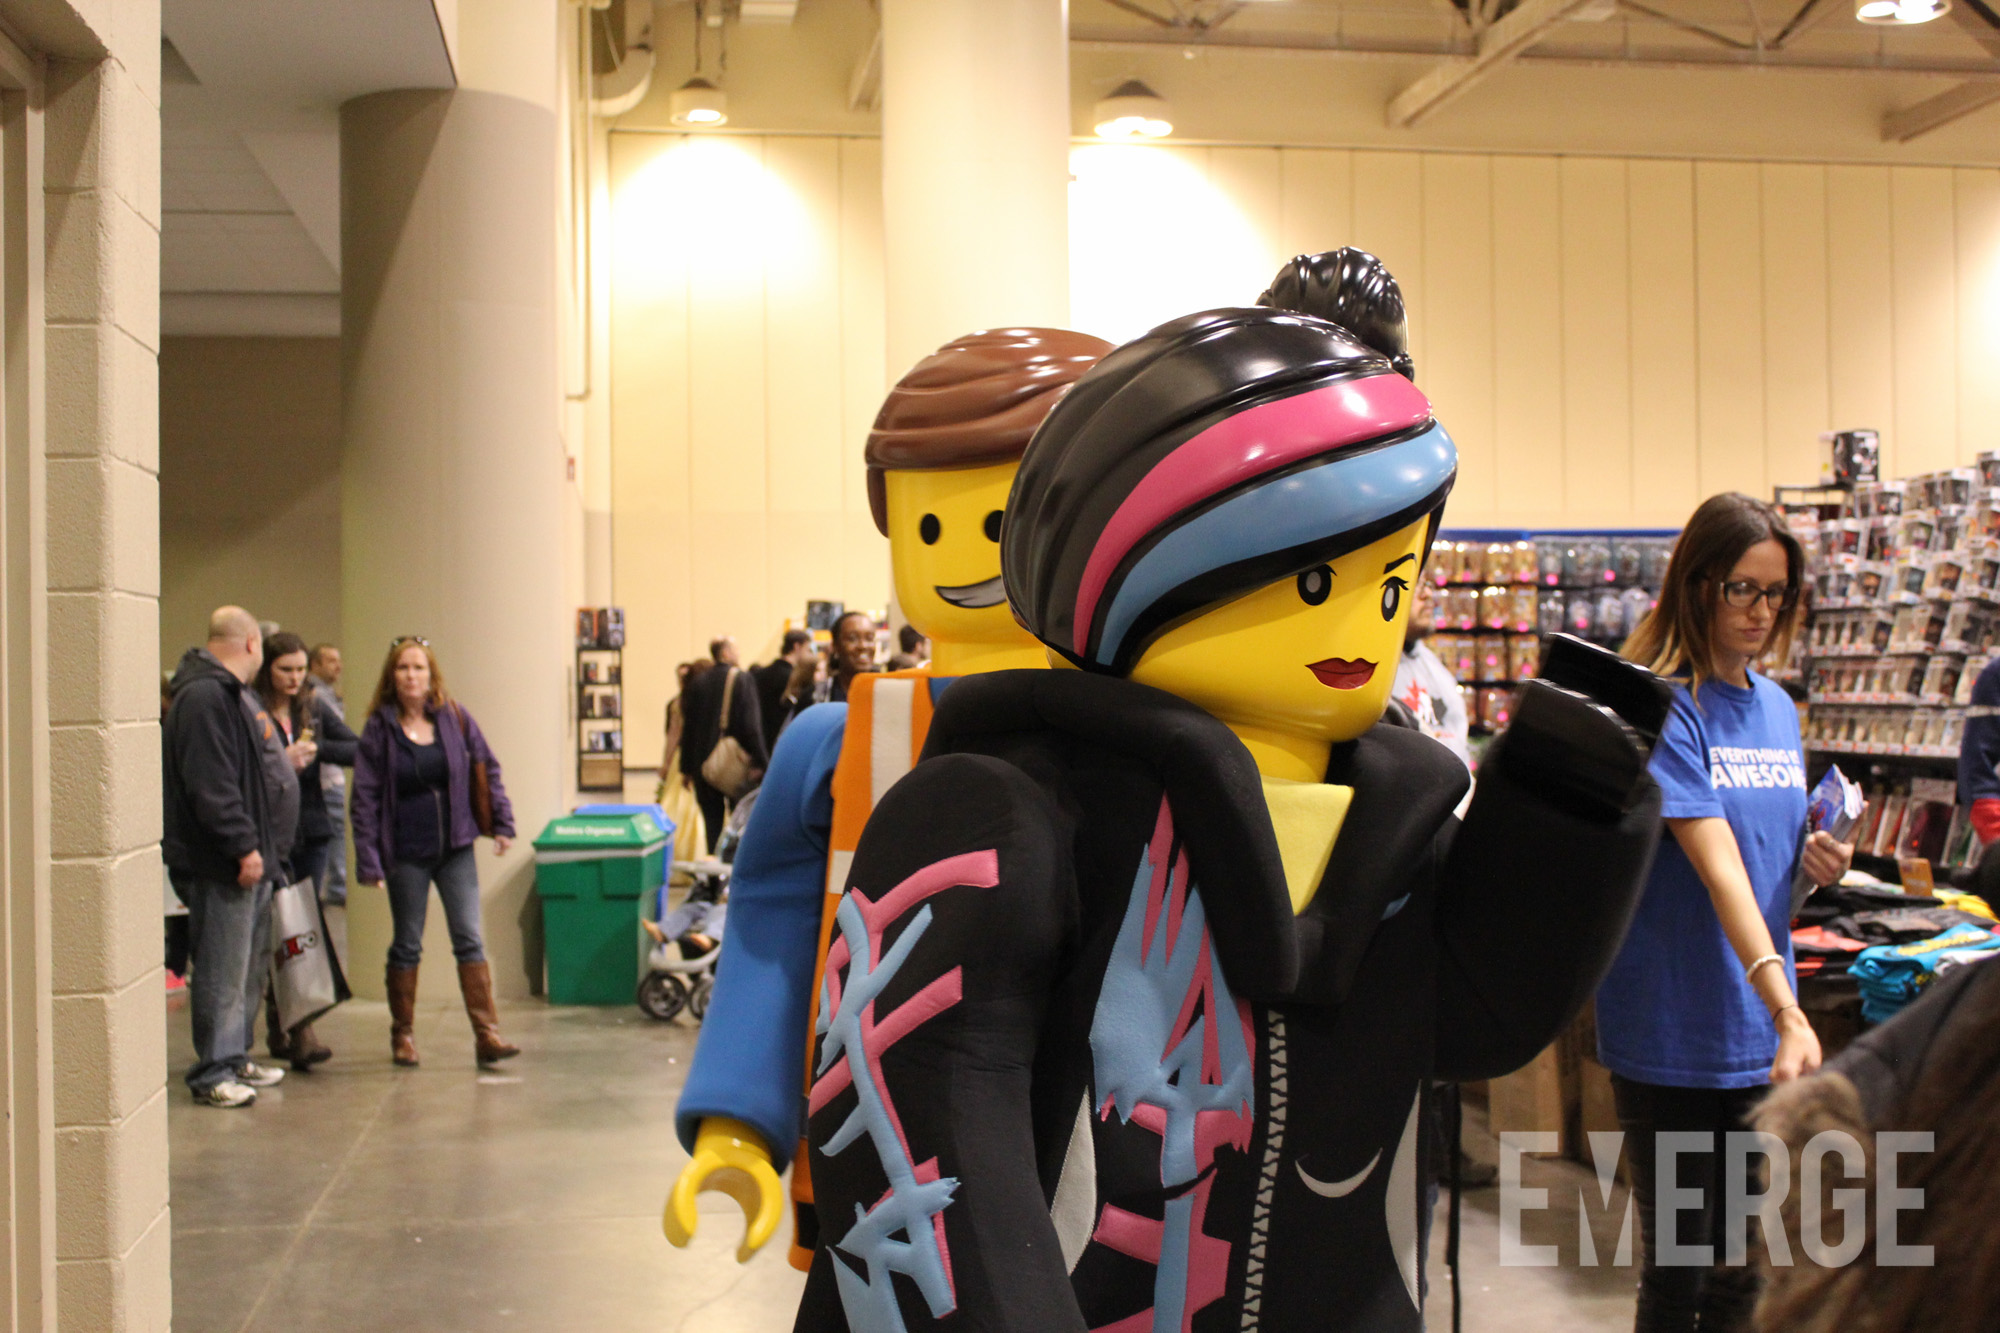 That grin on face of The Lego Movie's Emmet? That's the satisfaction of a great costume, and a high-grossing movie